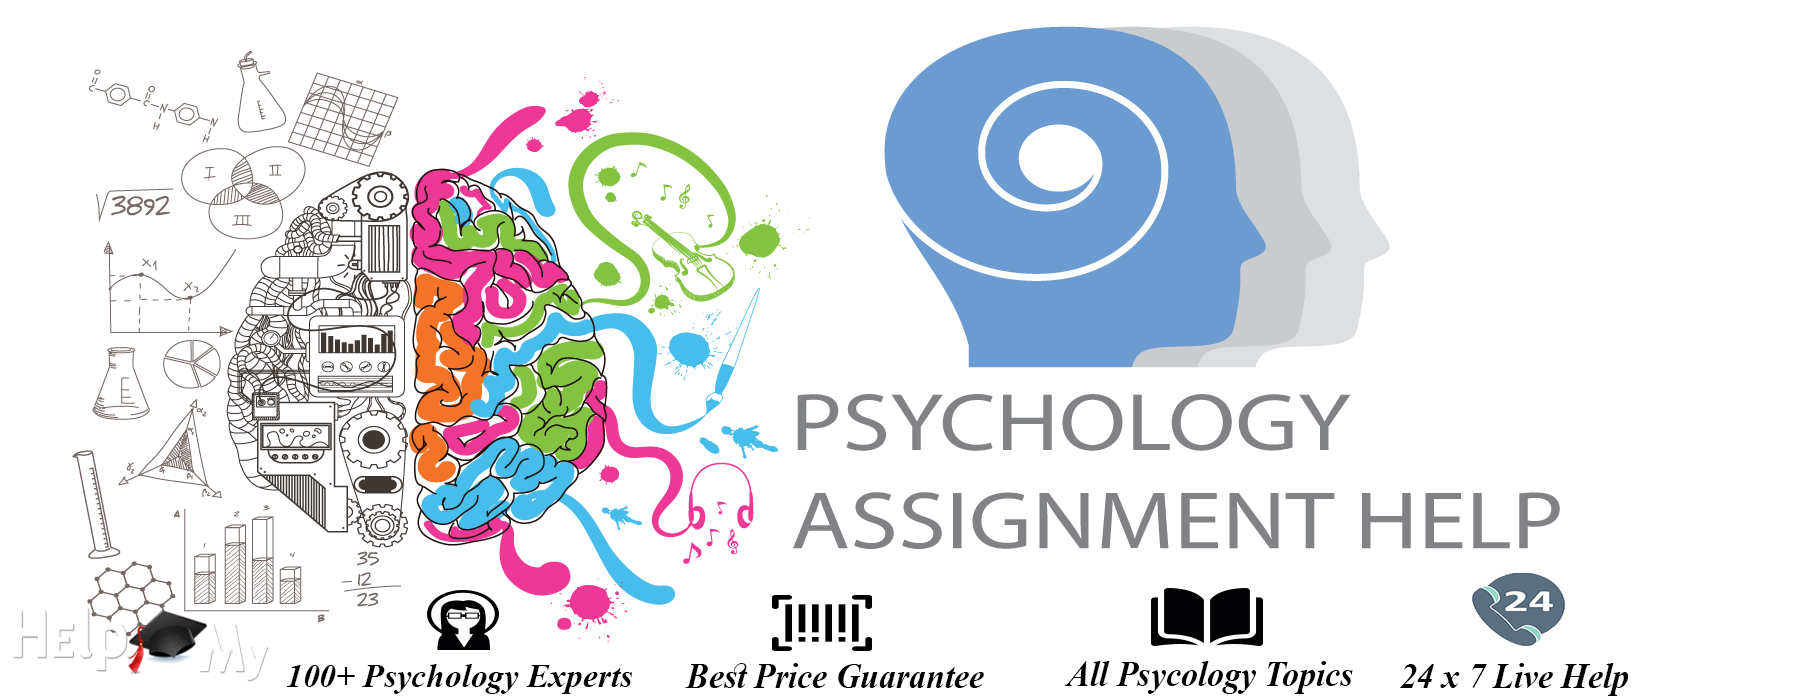 Psychology Assignment Help